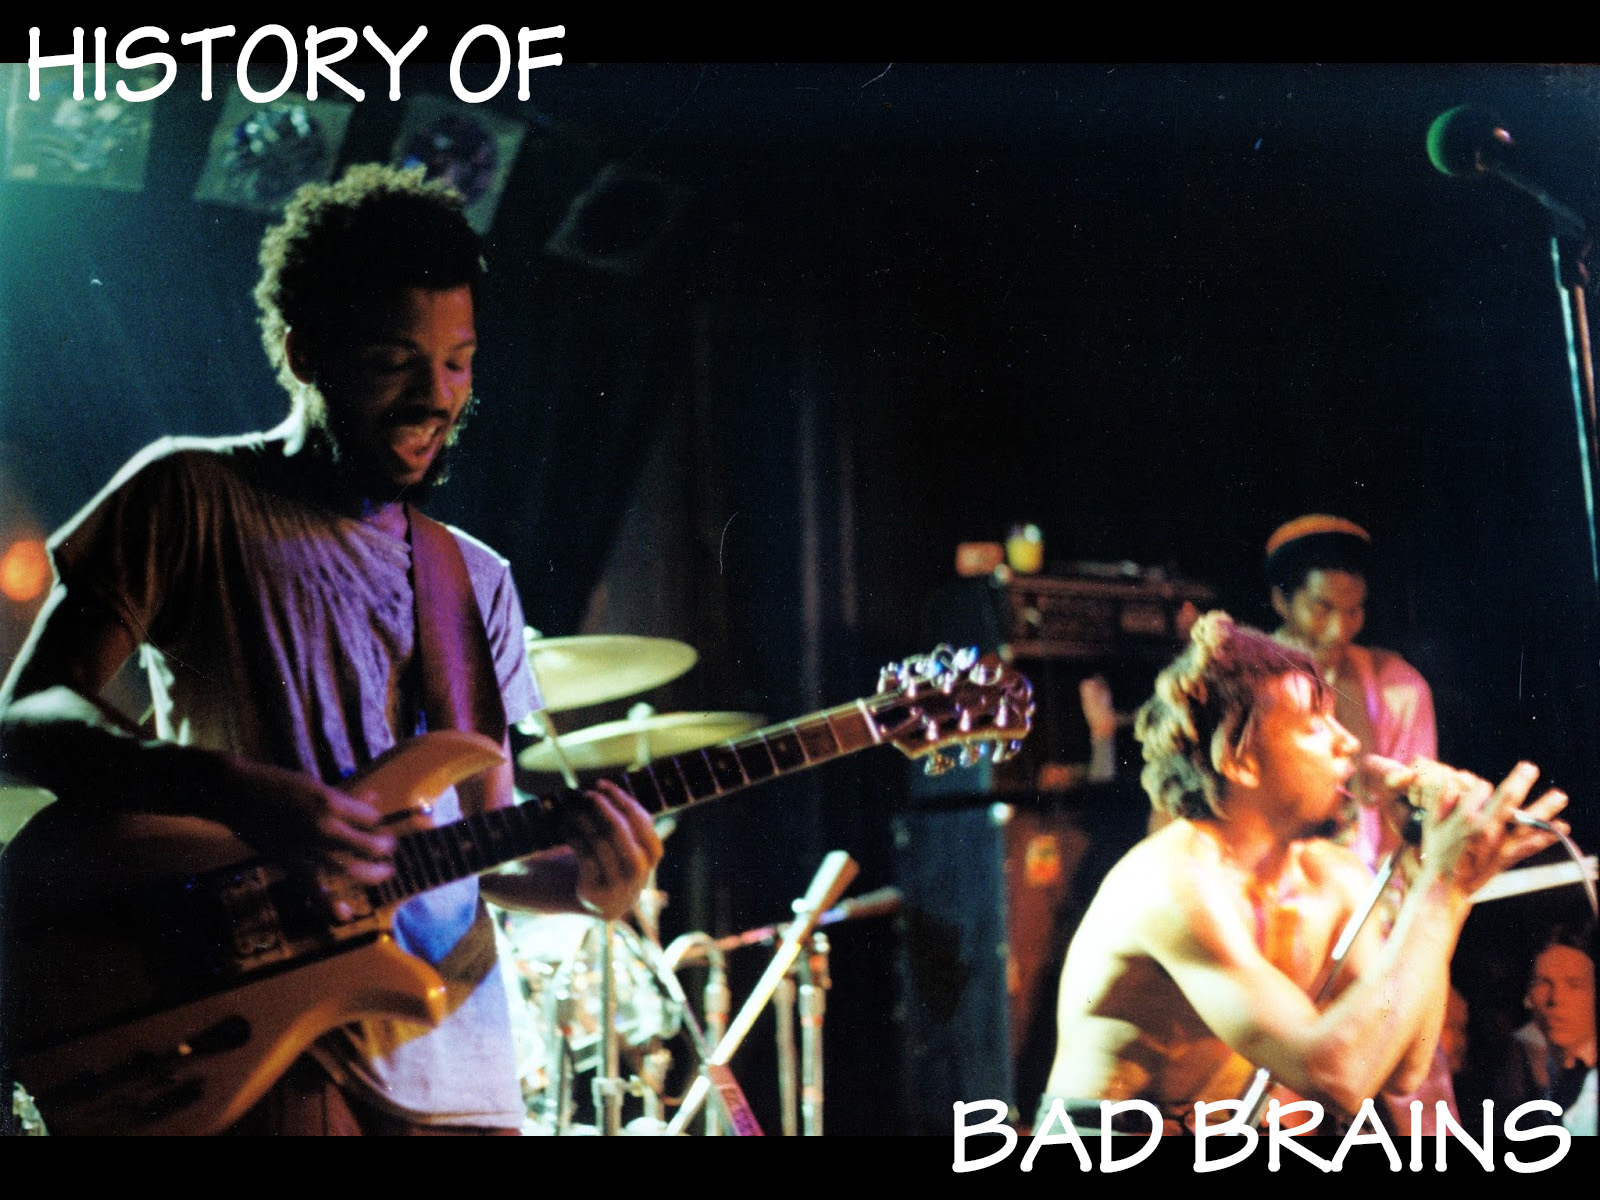 HISTORY OF BAD BRAINS